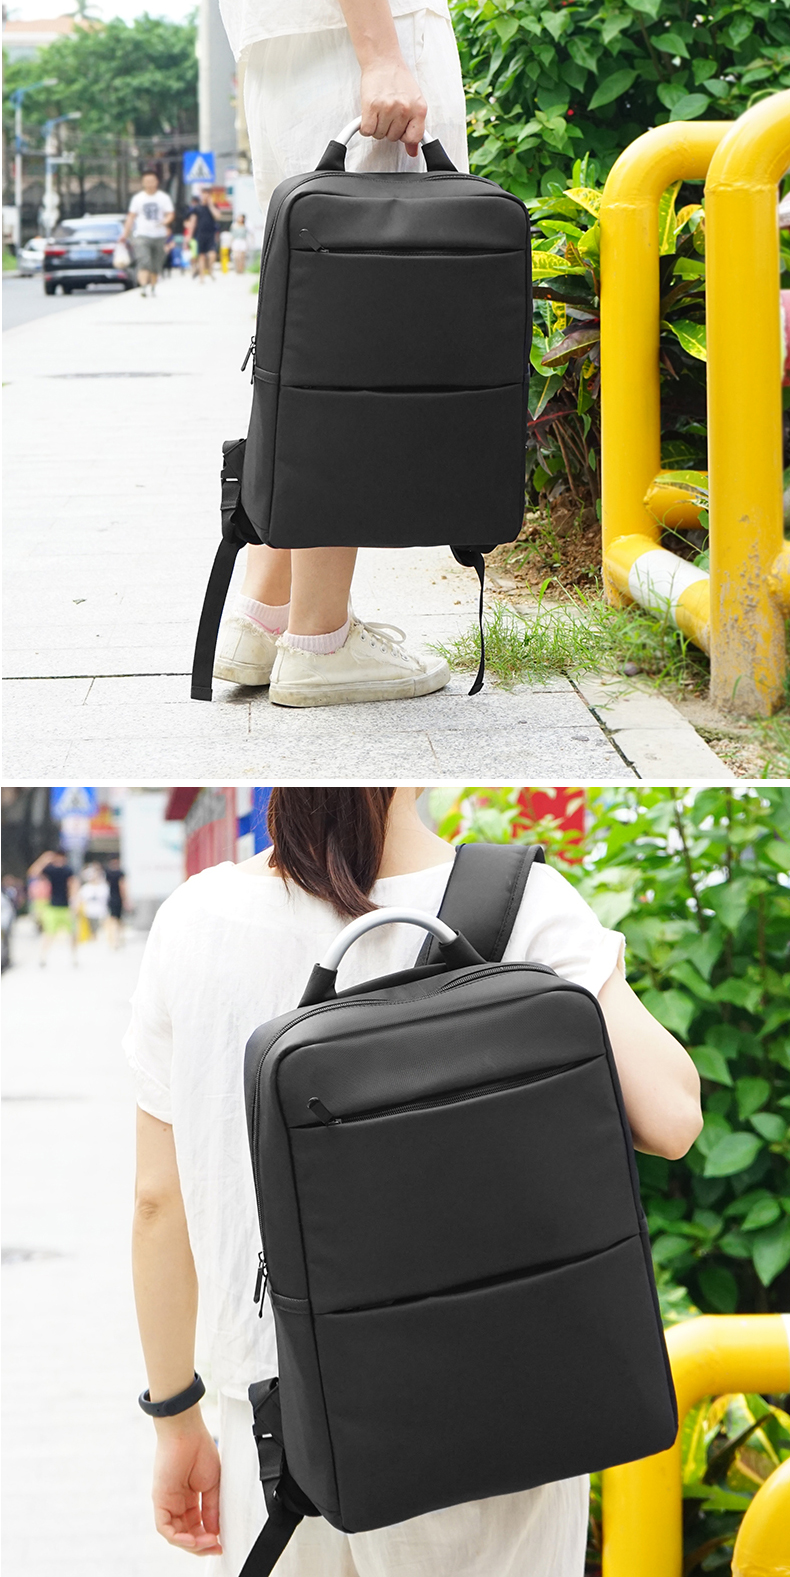 Logo customized factory large capacity backpack business backpack students backpack computer bag